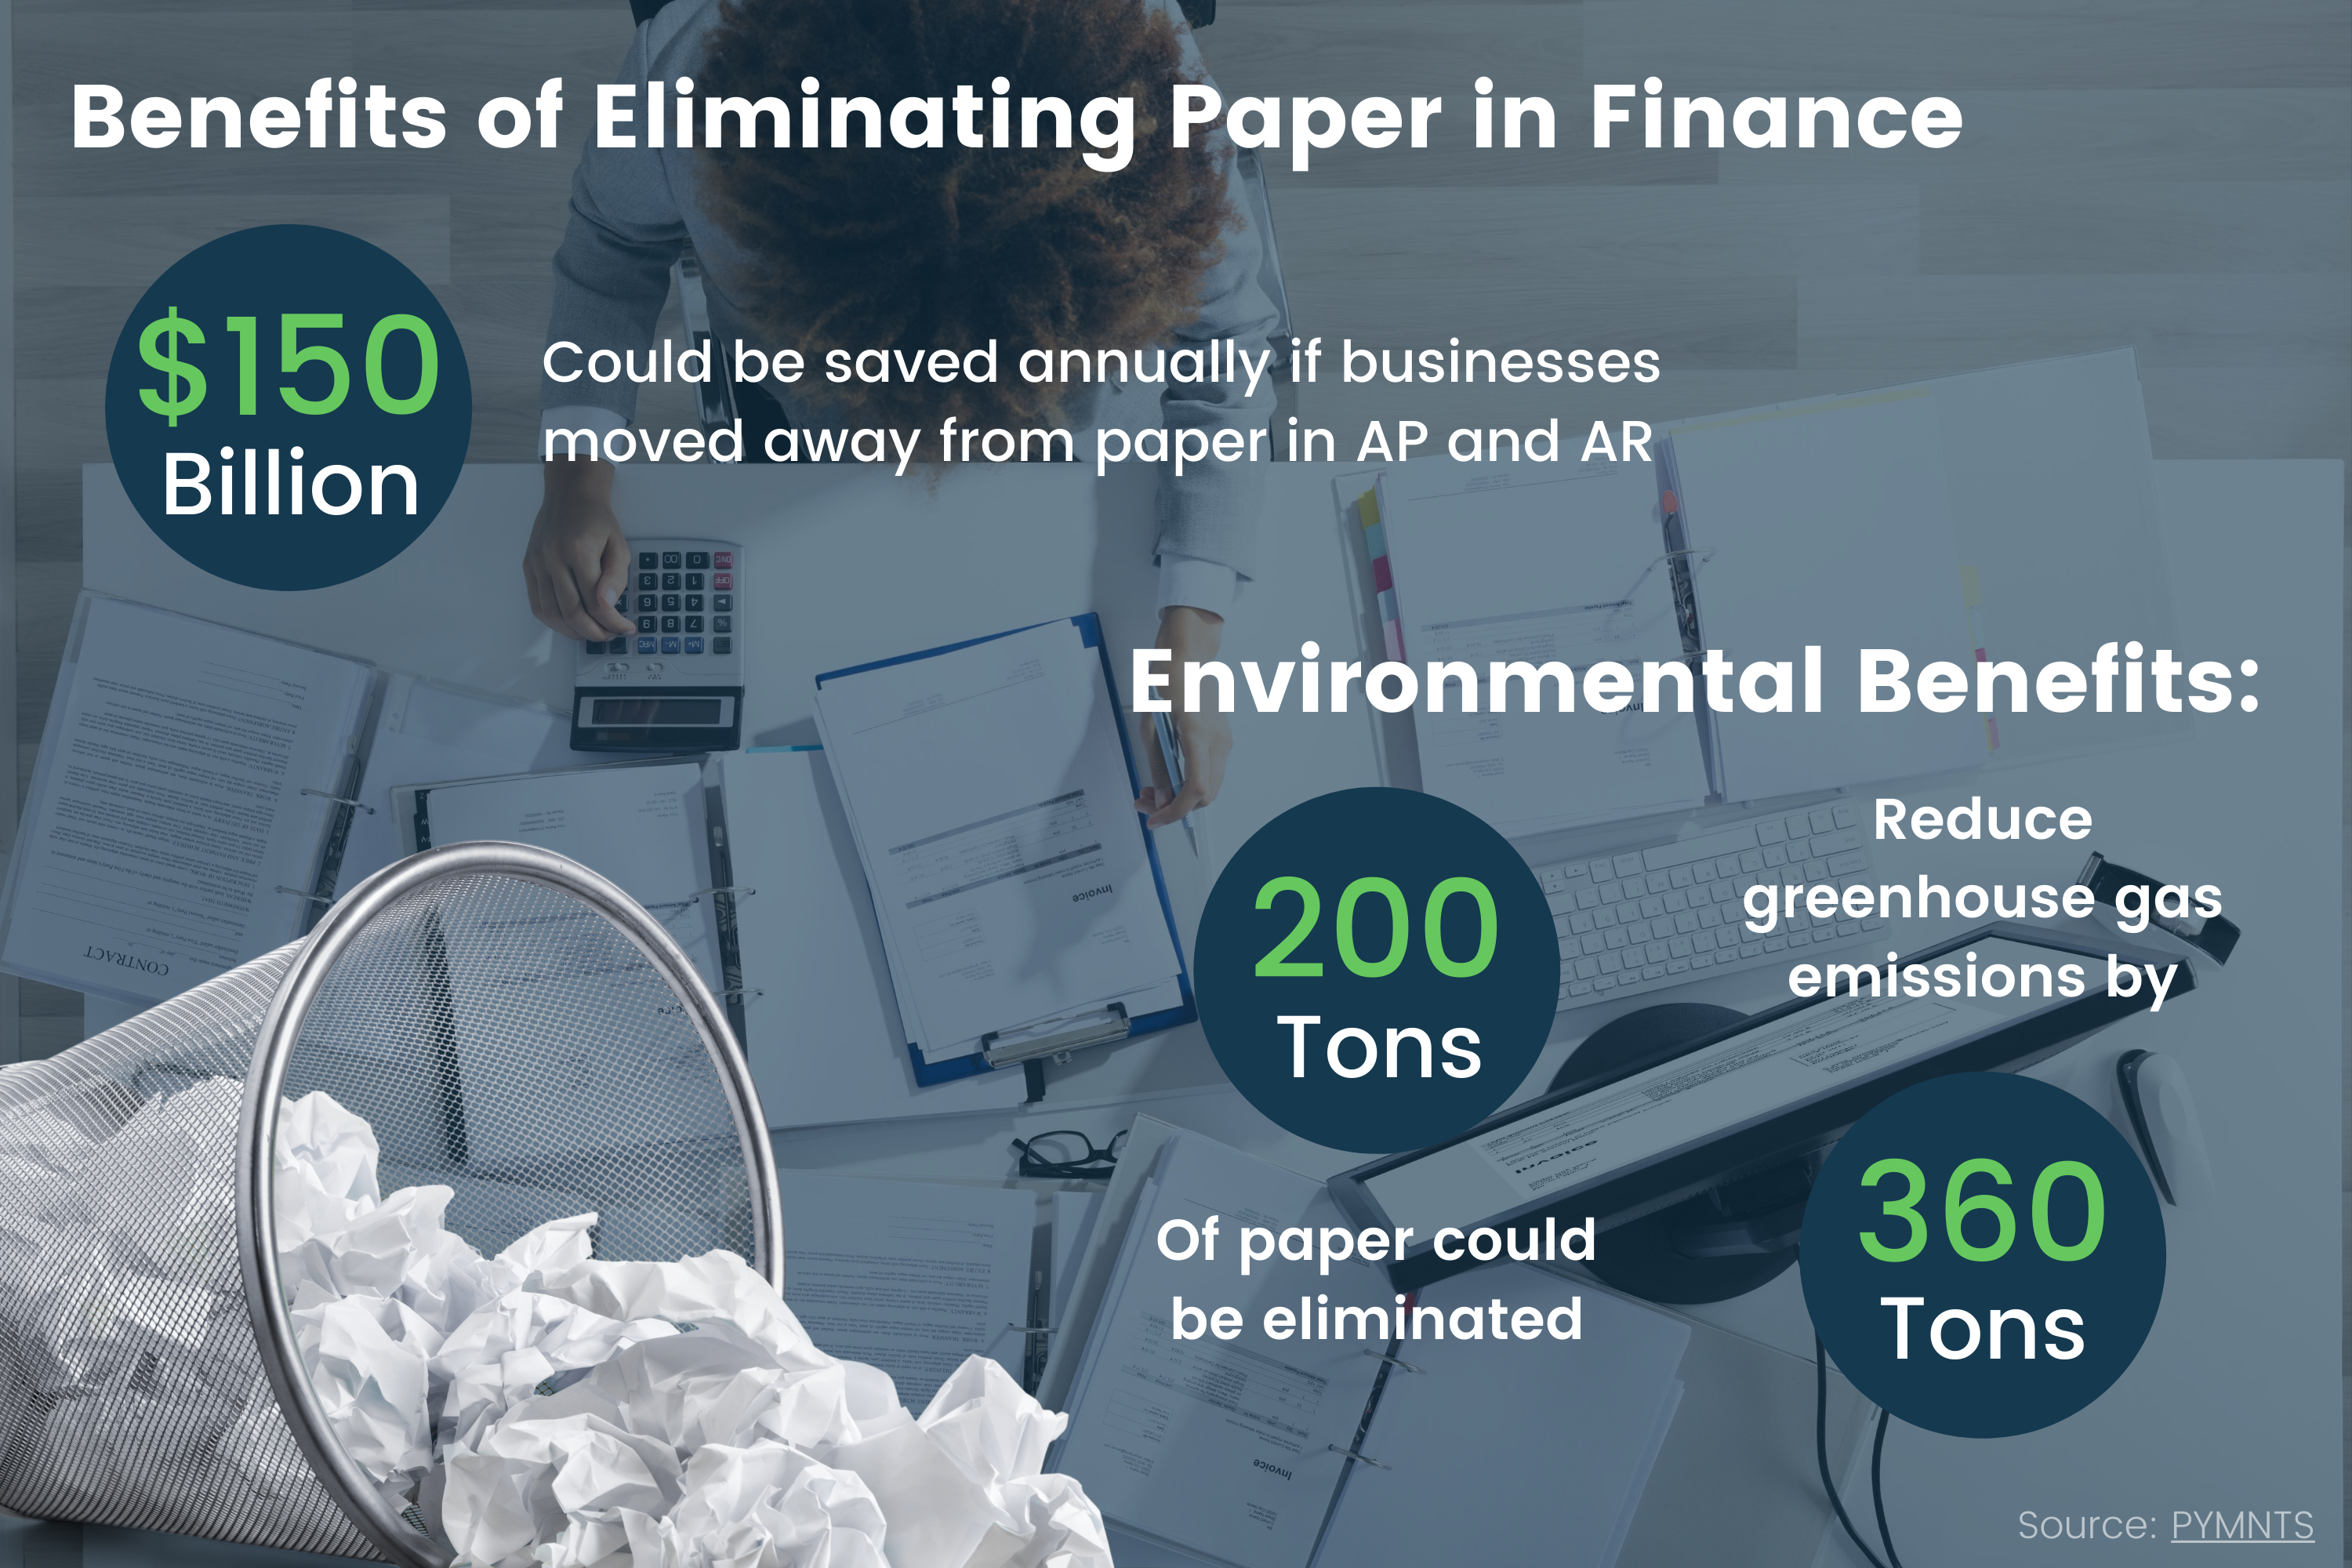 Benefits_of_eliminating_paper_in_finance_and_environmental_benefits_inforgaphic_with_a_background_of_a_female_finance_professional_filling_out_paper_invoices_and_surrounded_by_paper